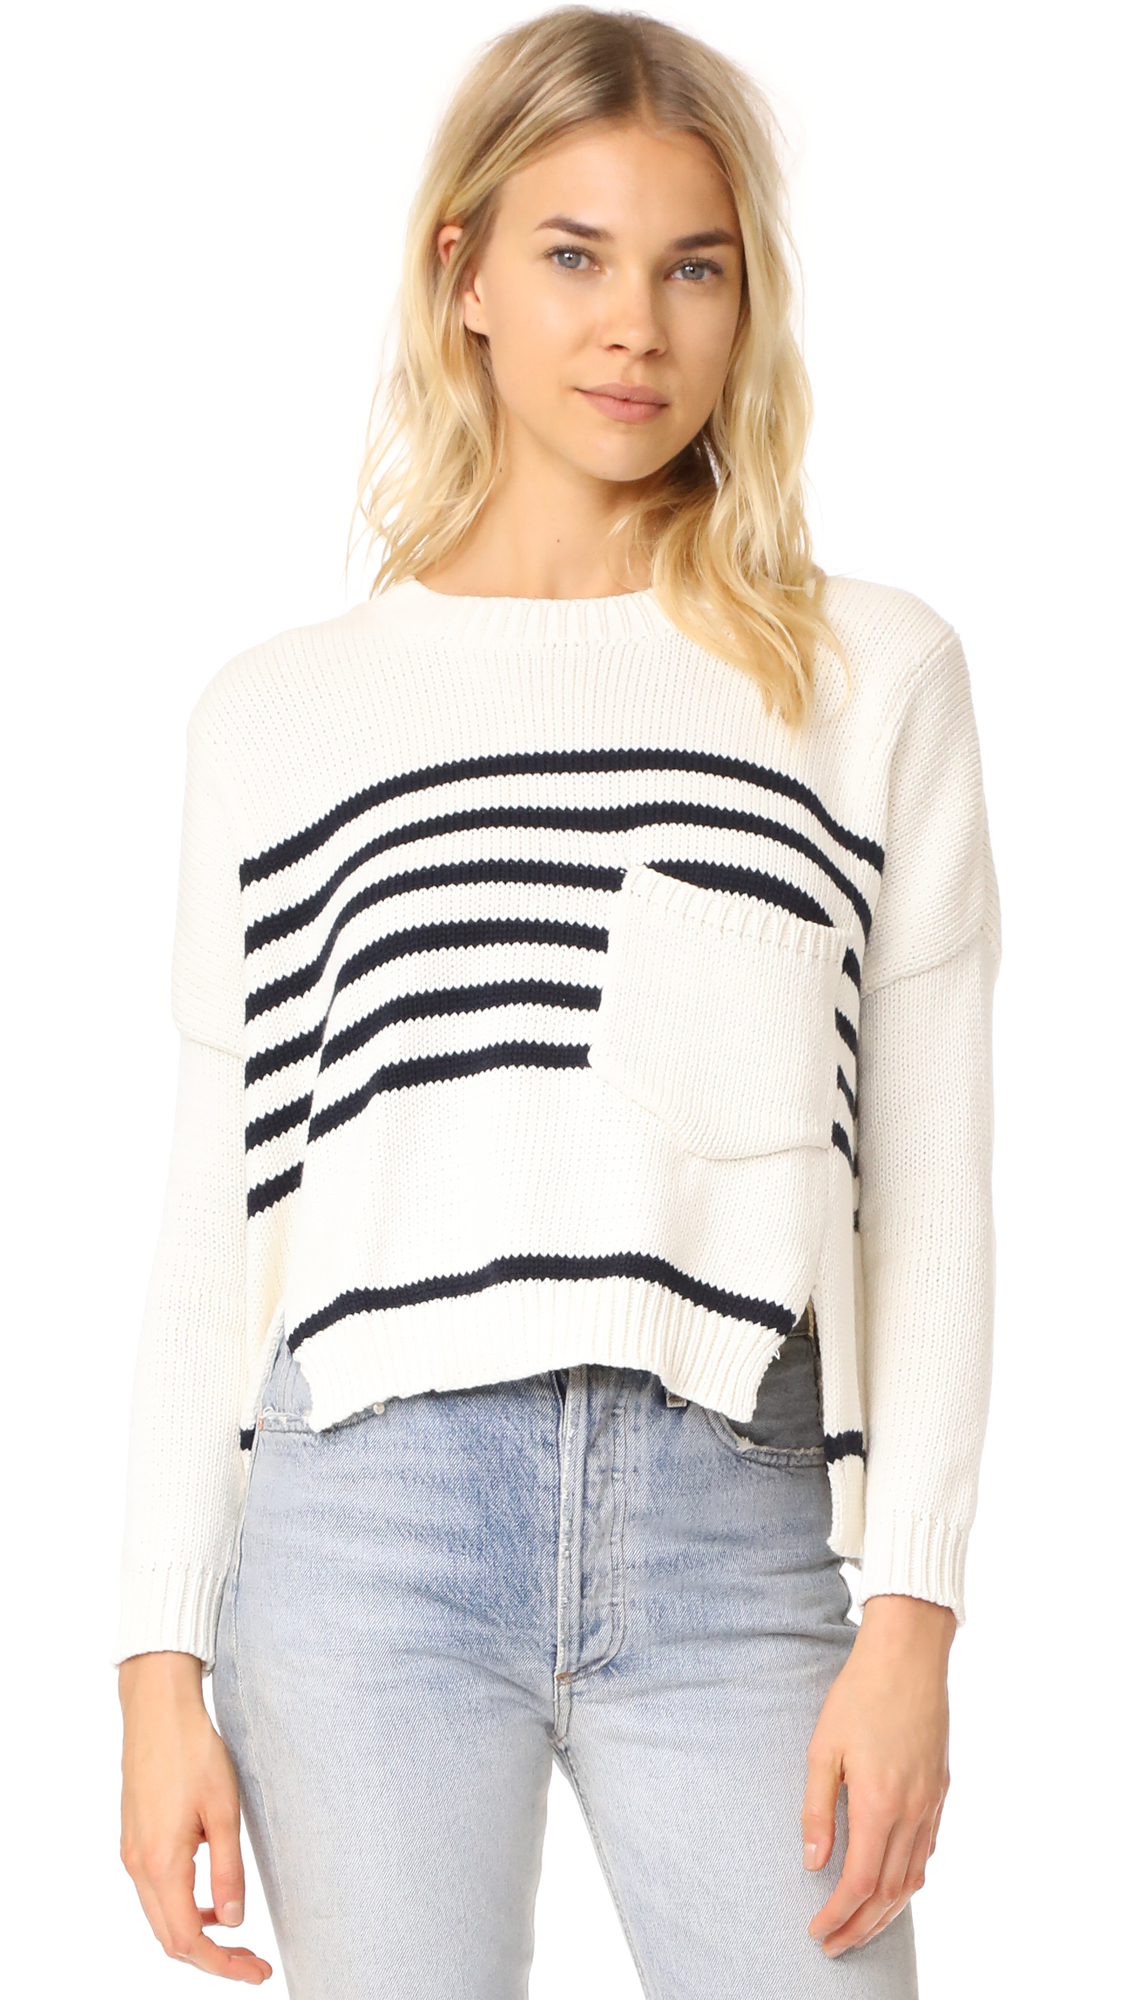 FAITHFULL THE BRAND Monaco Knit Sweater - White/Navy Stripe